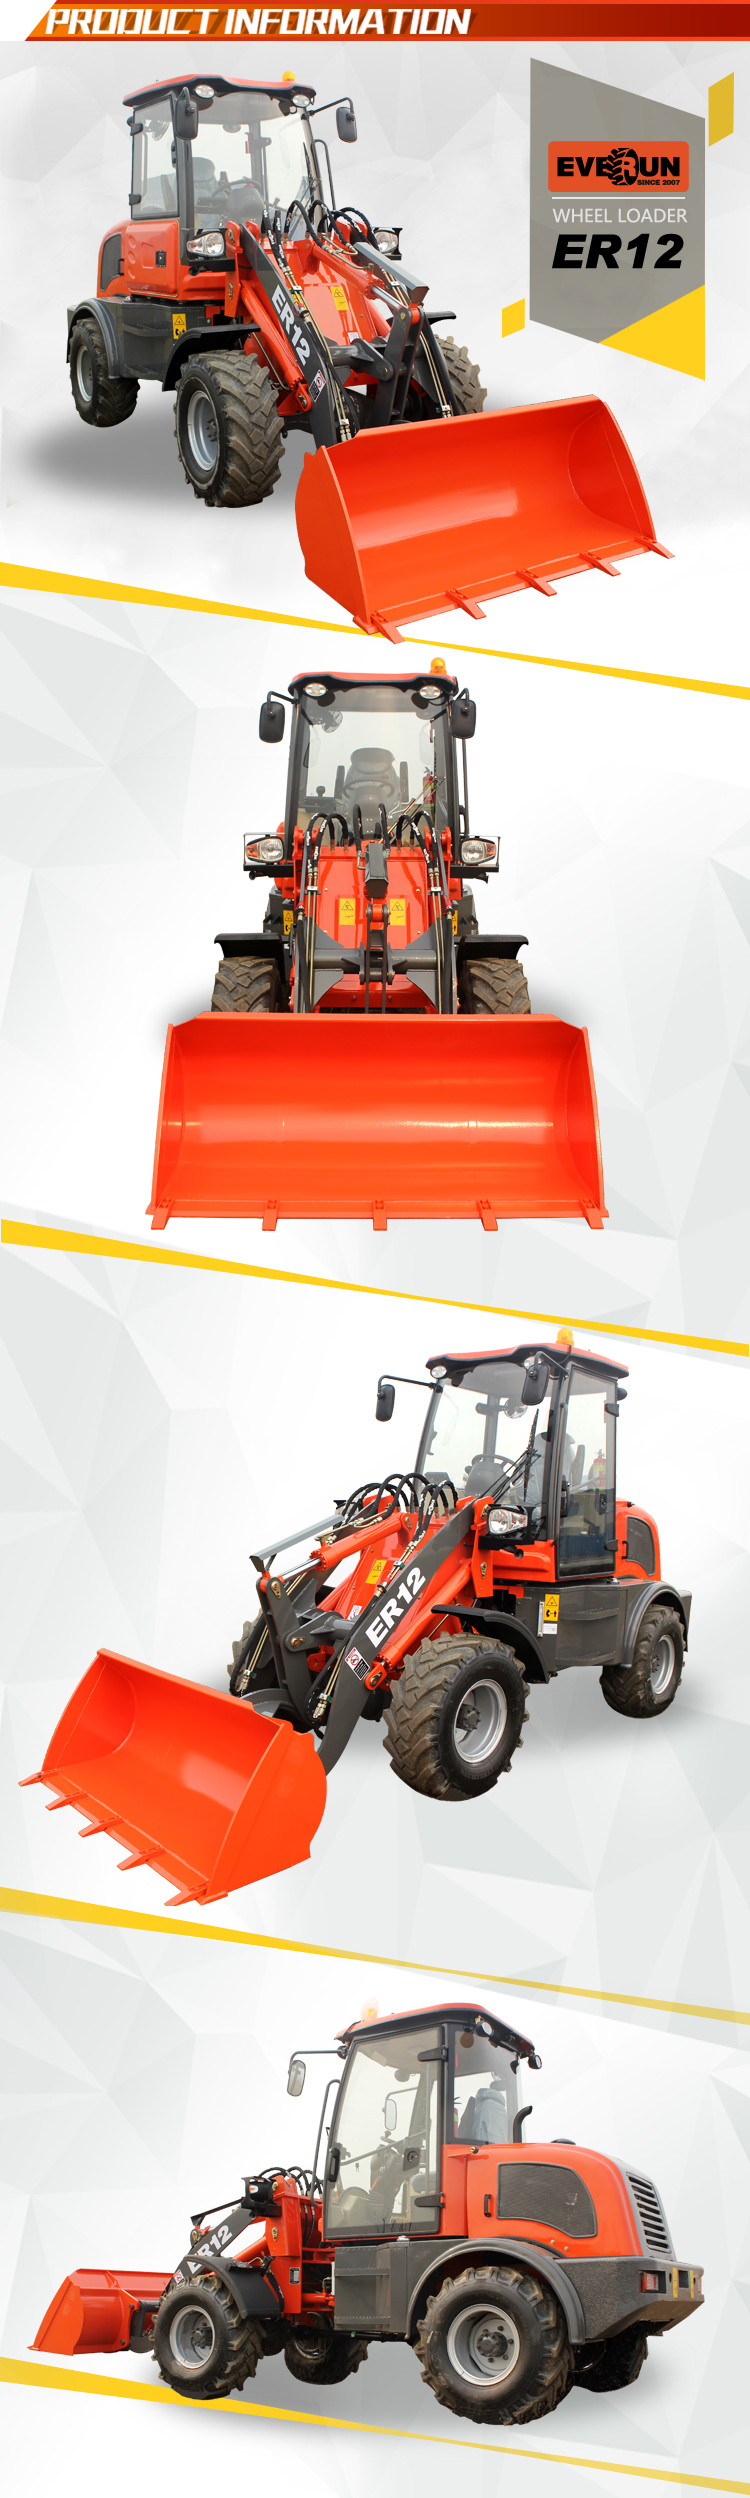 Everun 2016 new products ER12 farm tractor for sale